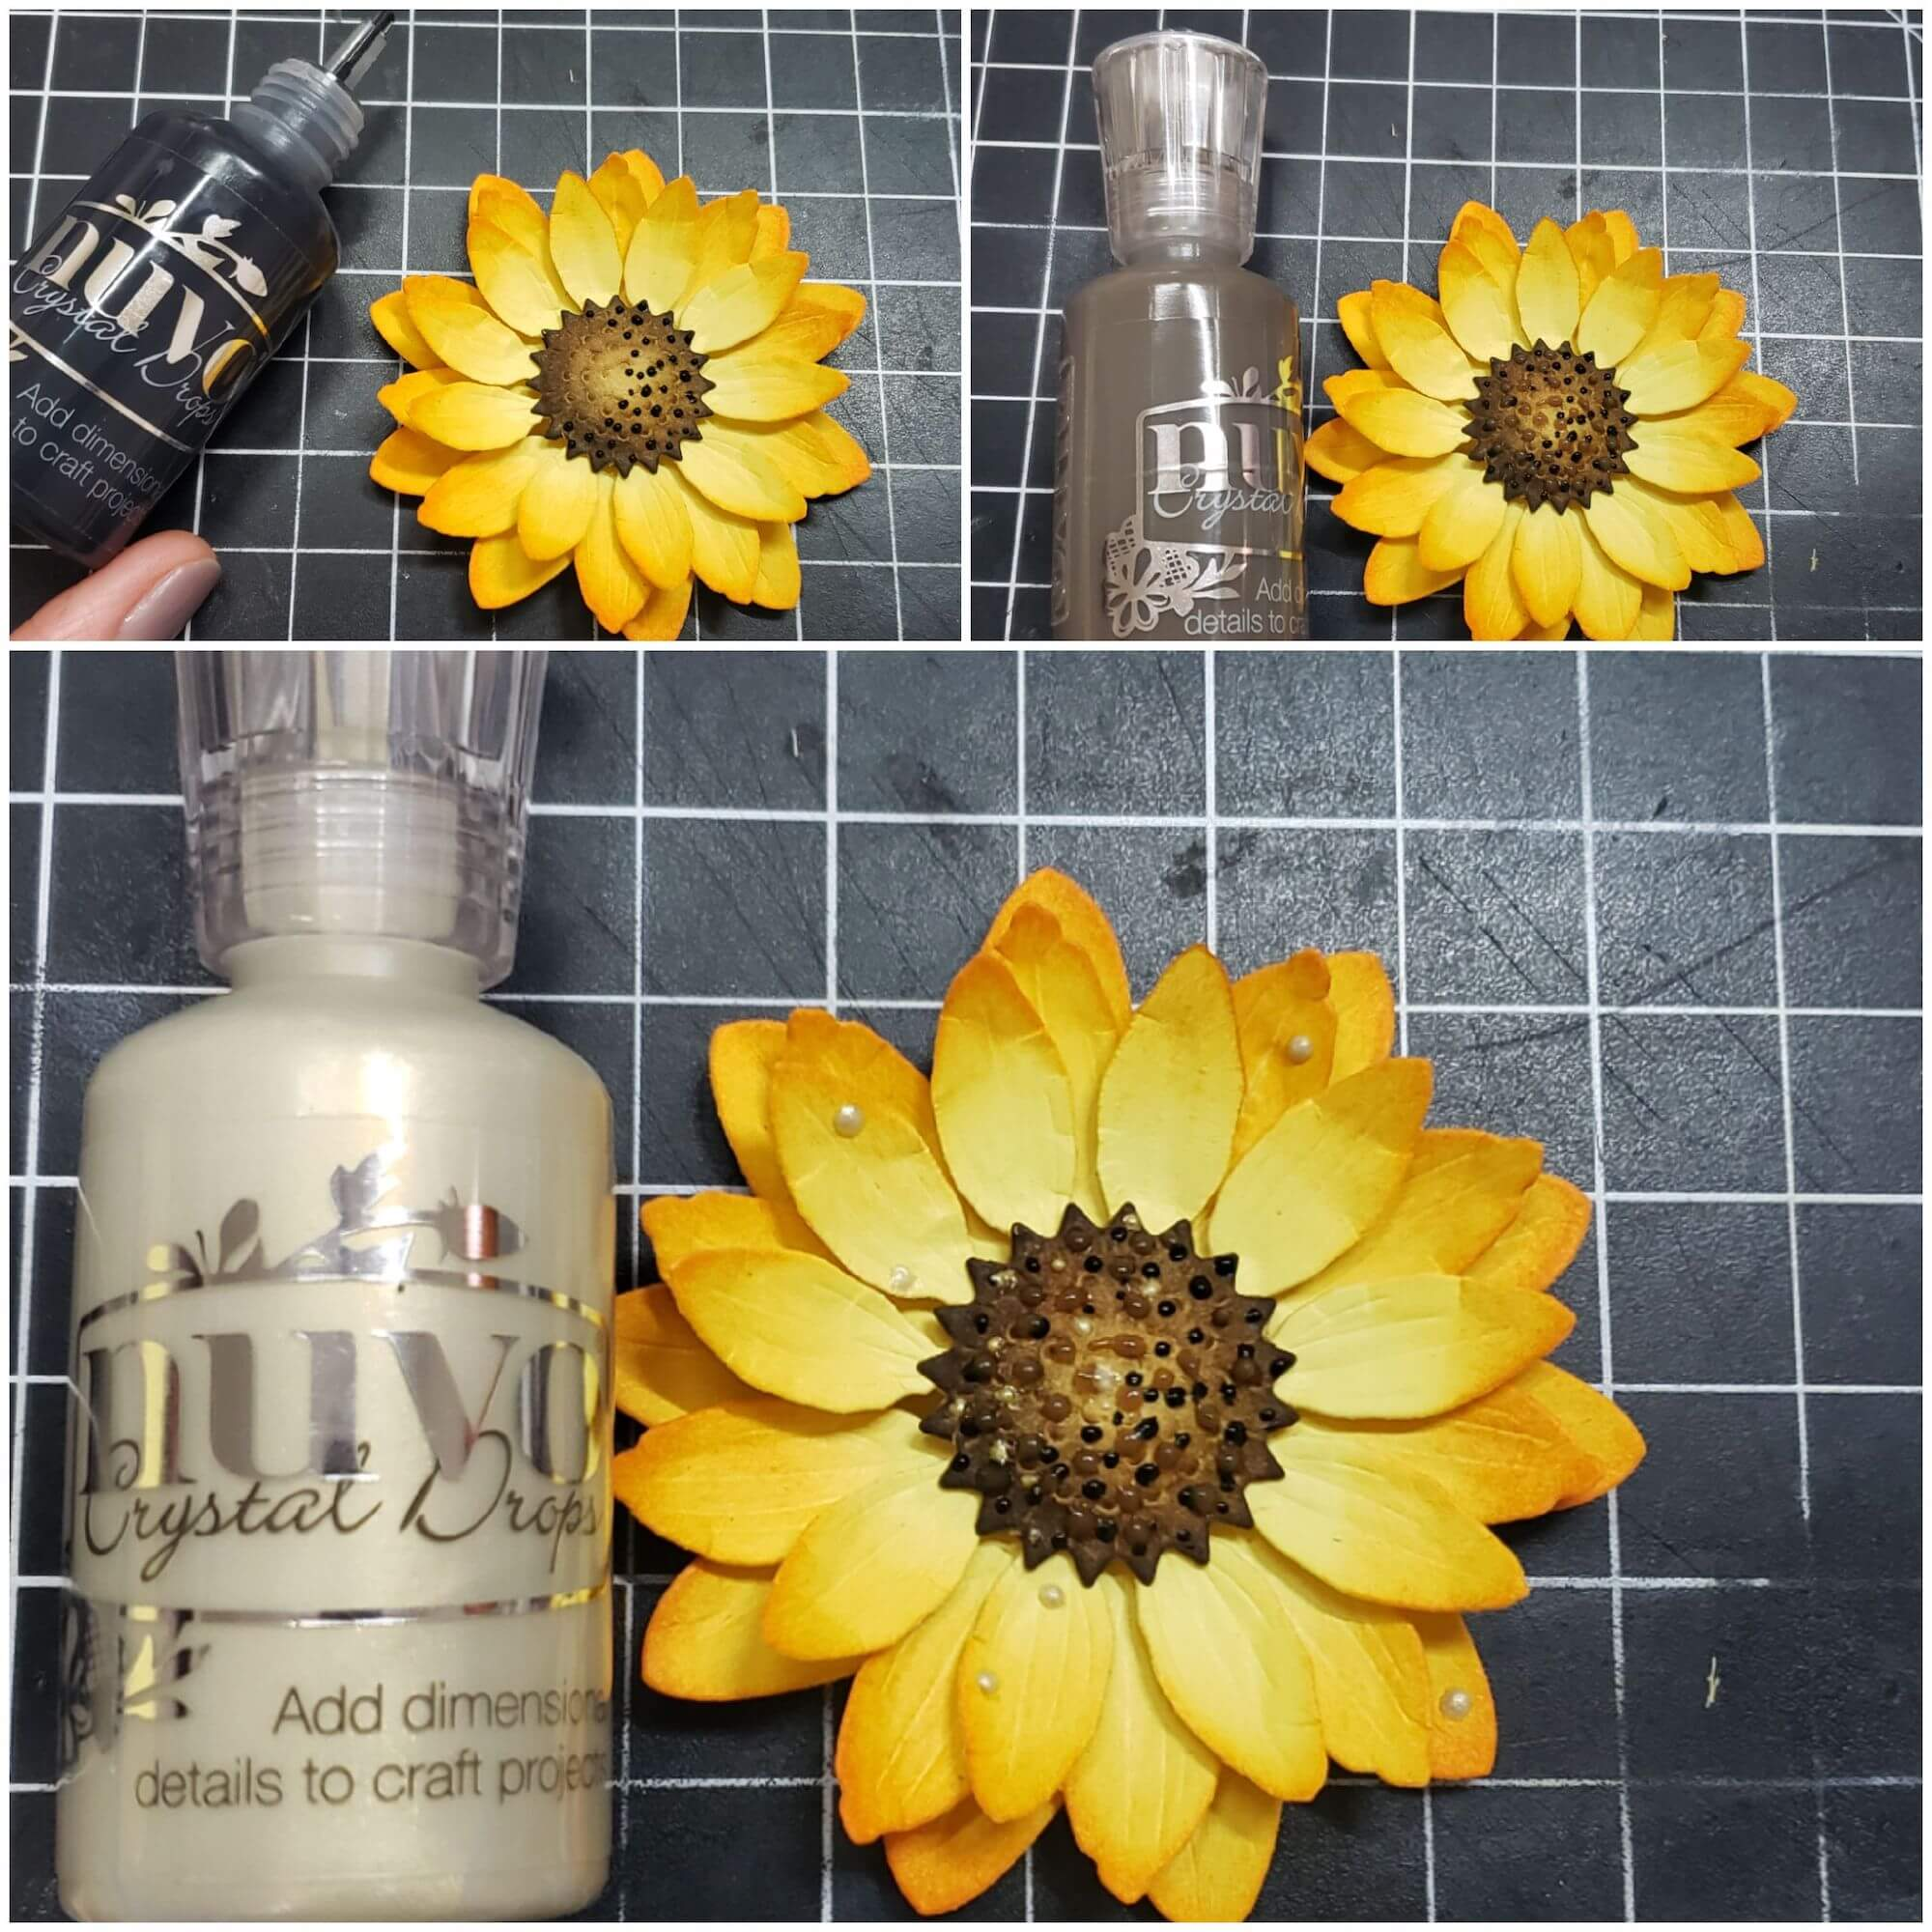 Adding nuvo drops to center of flower